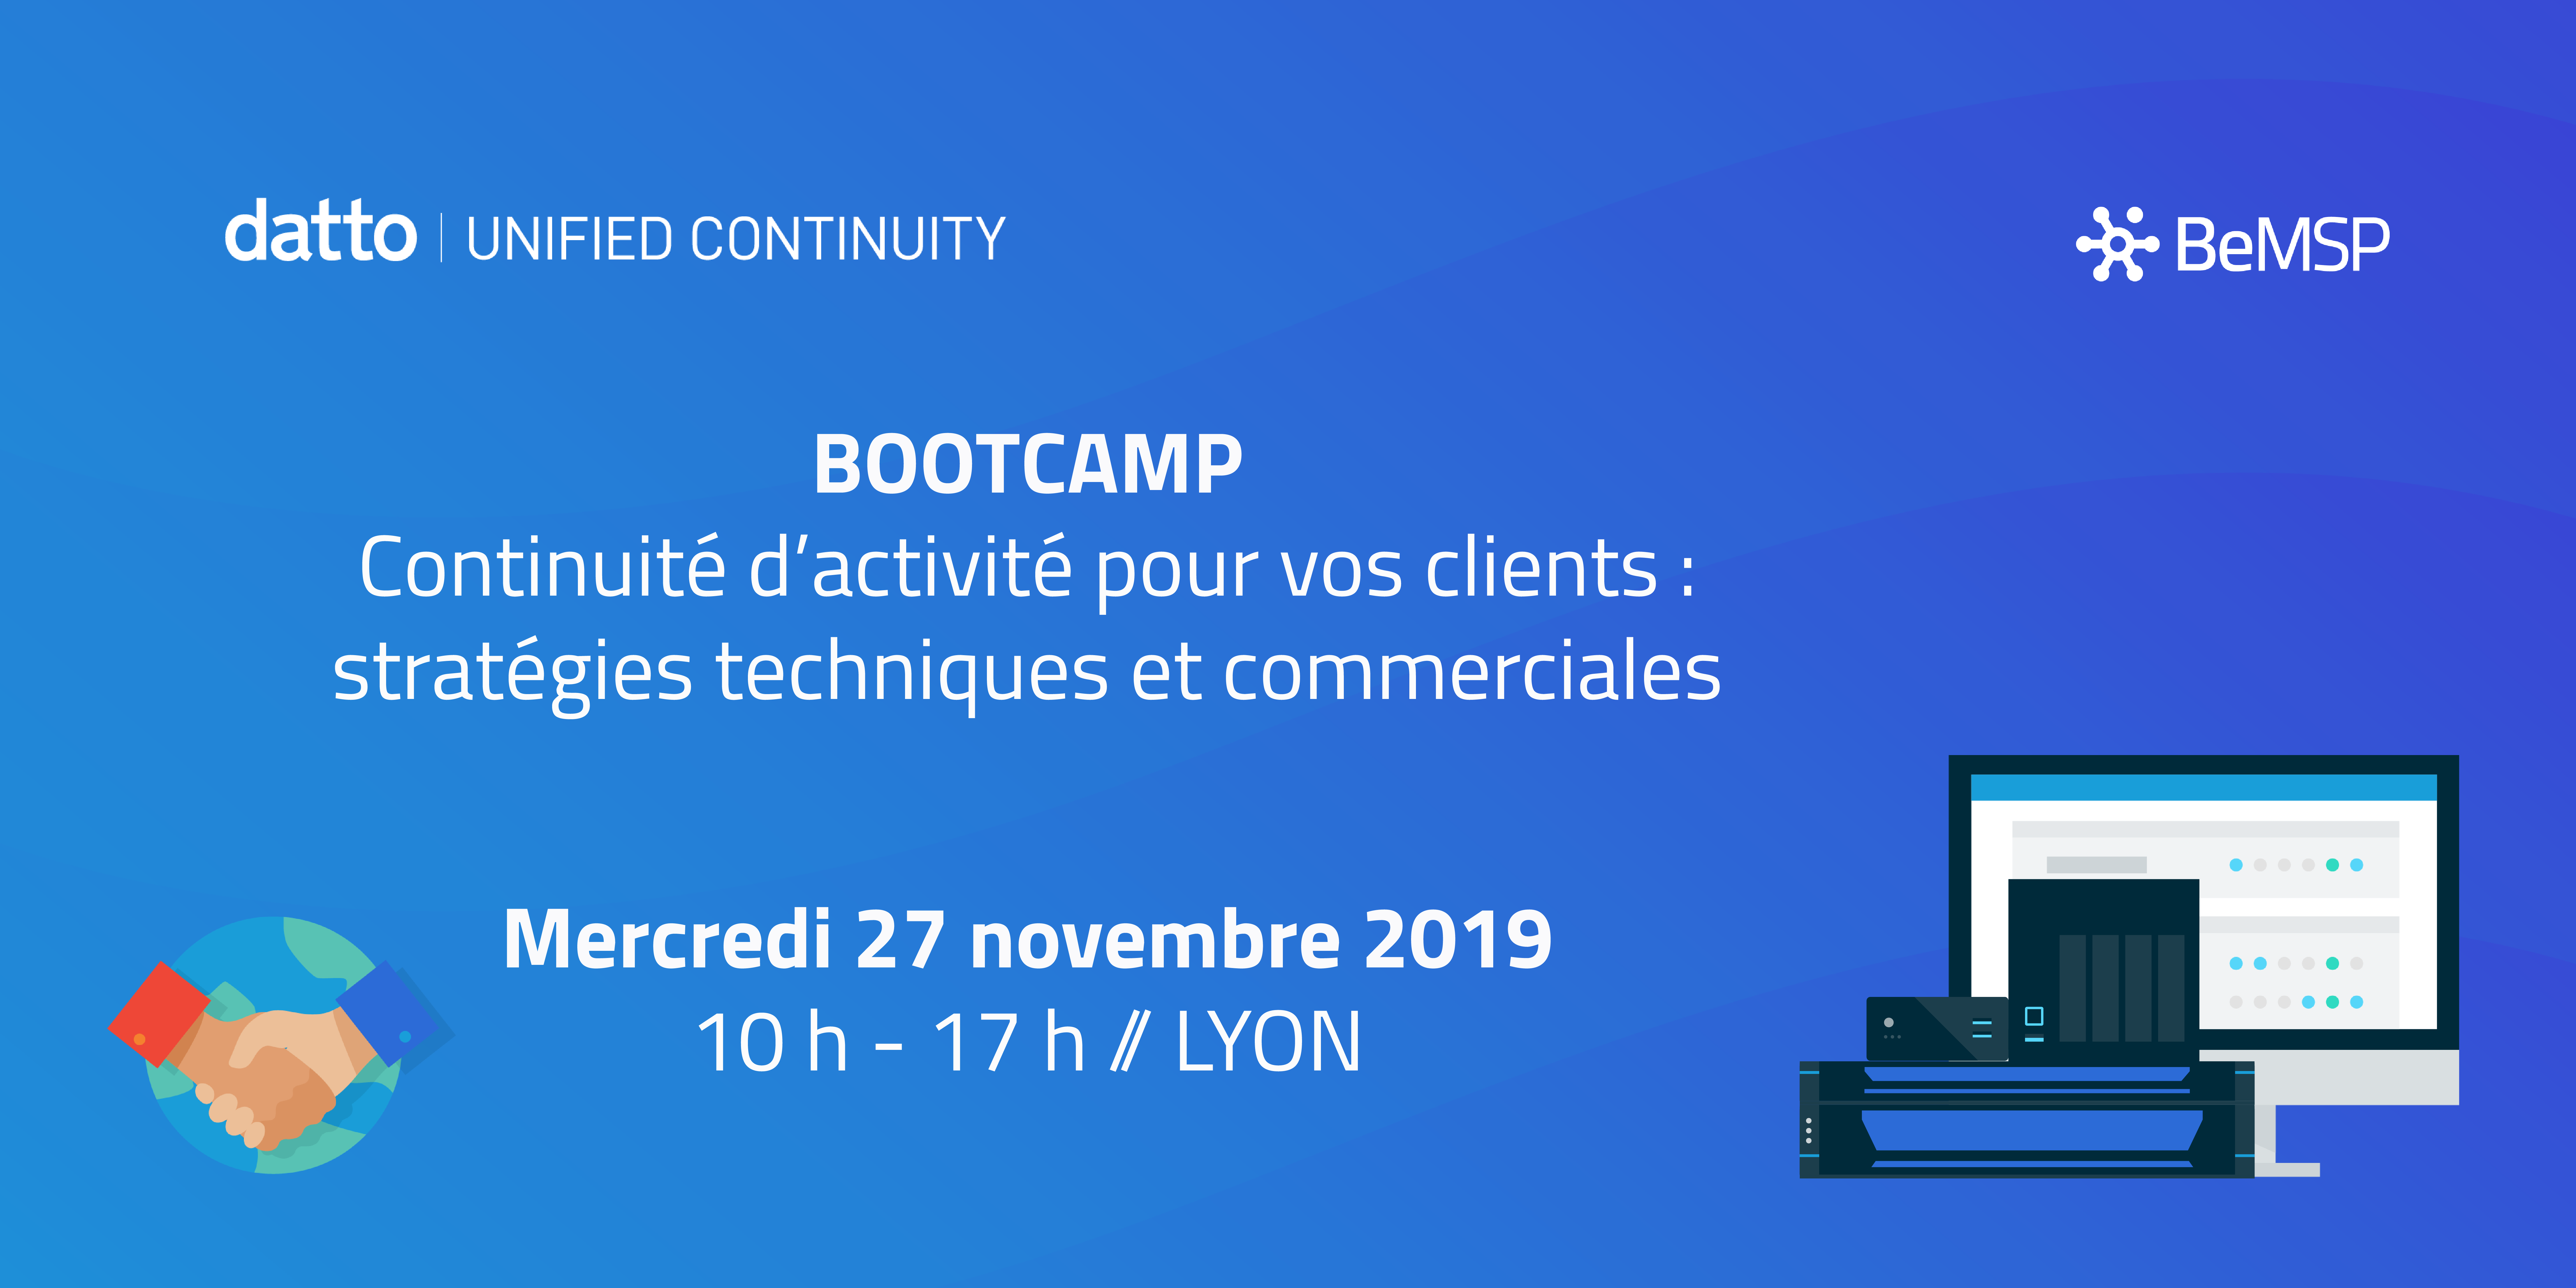 [Bootcamp] Datto Unified Continuity – Mercredi 27 novembre à Lyon